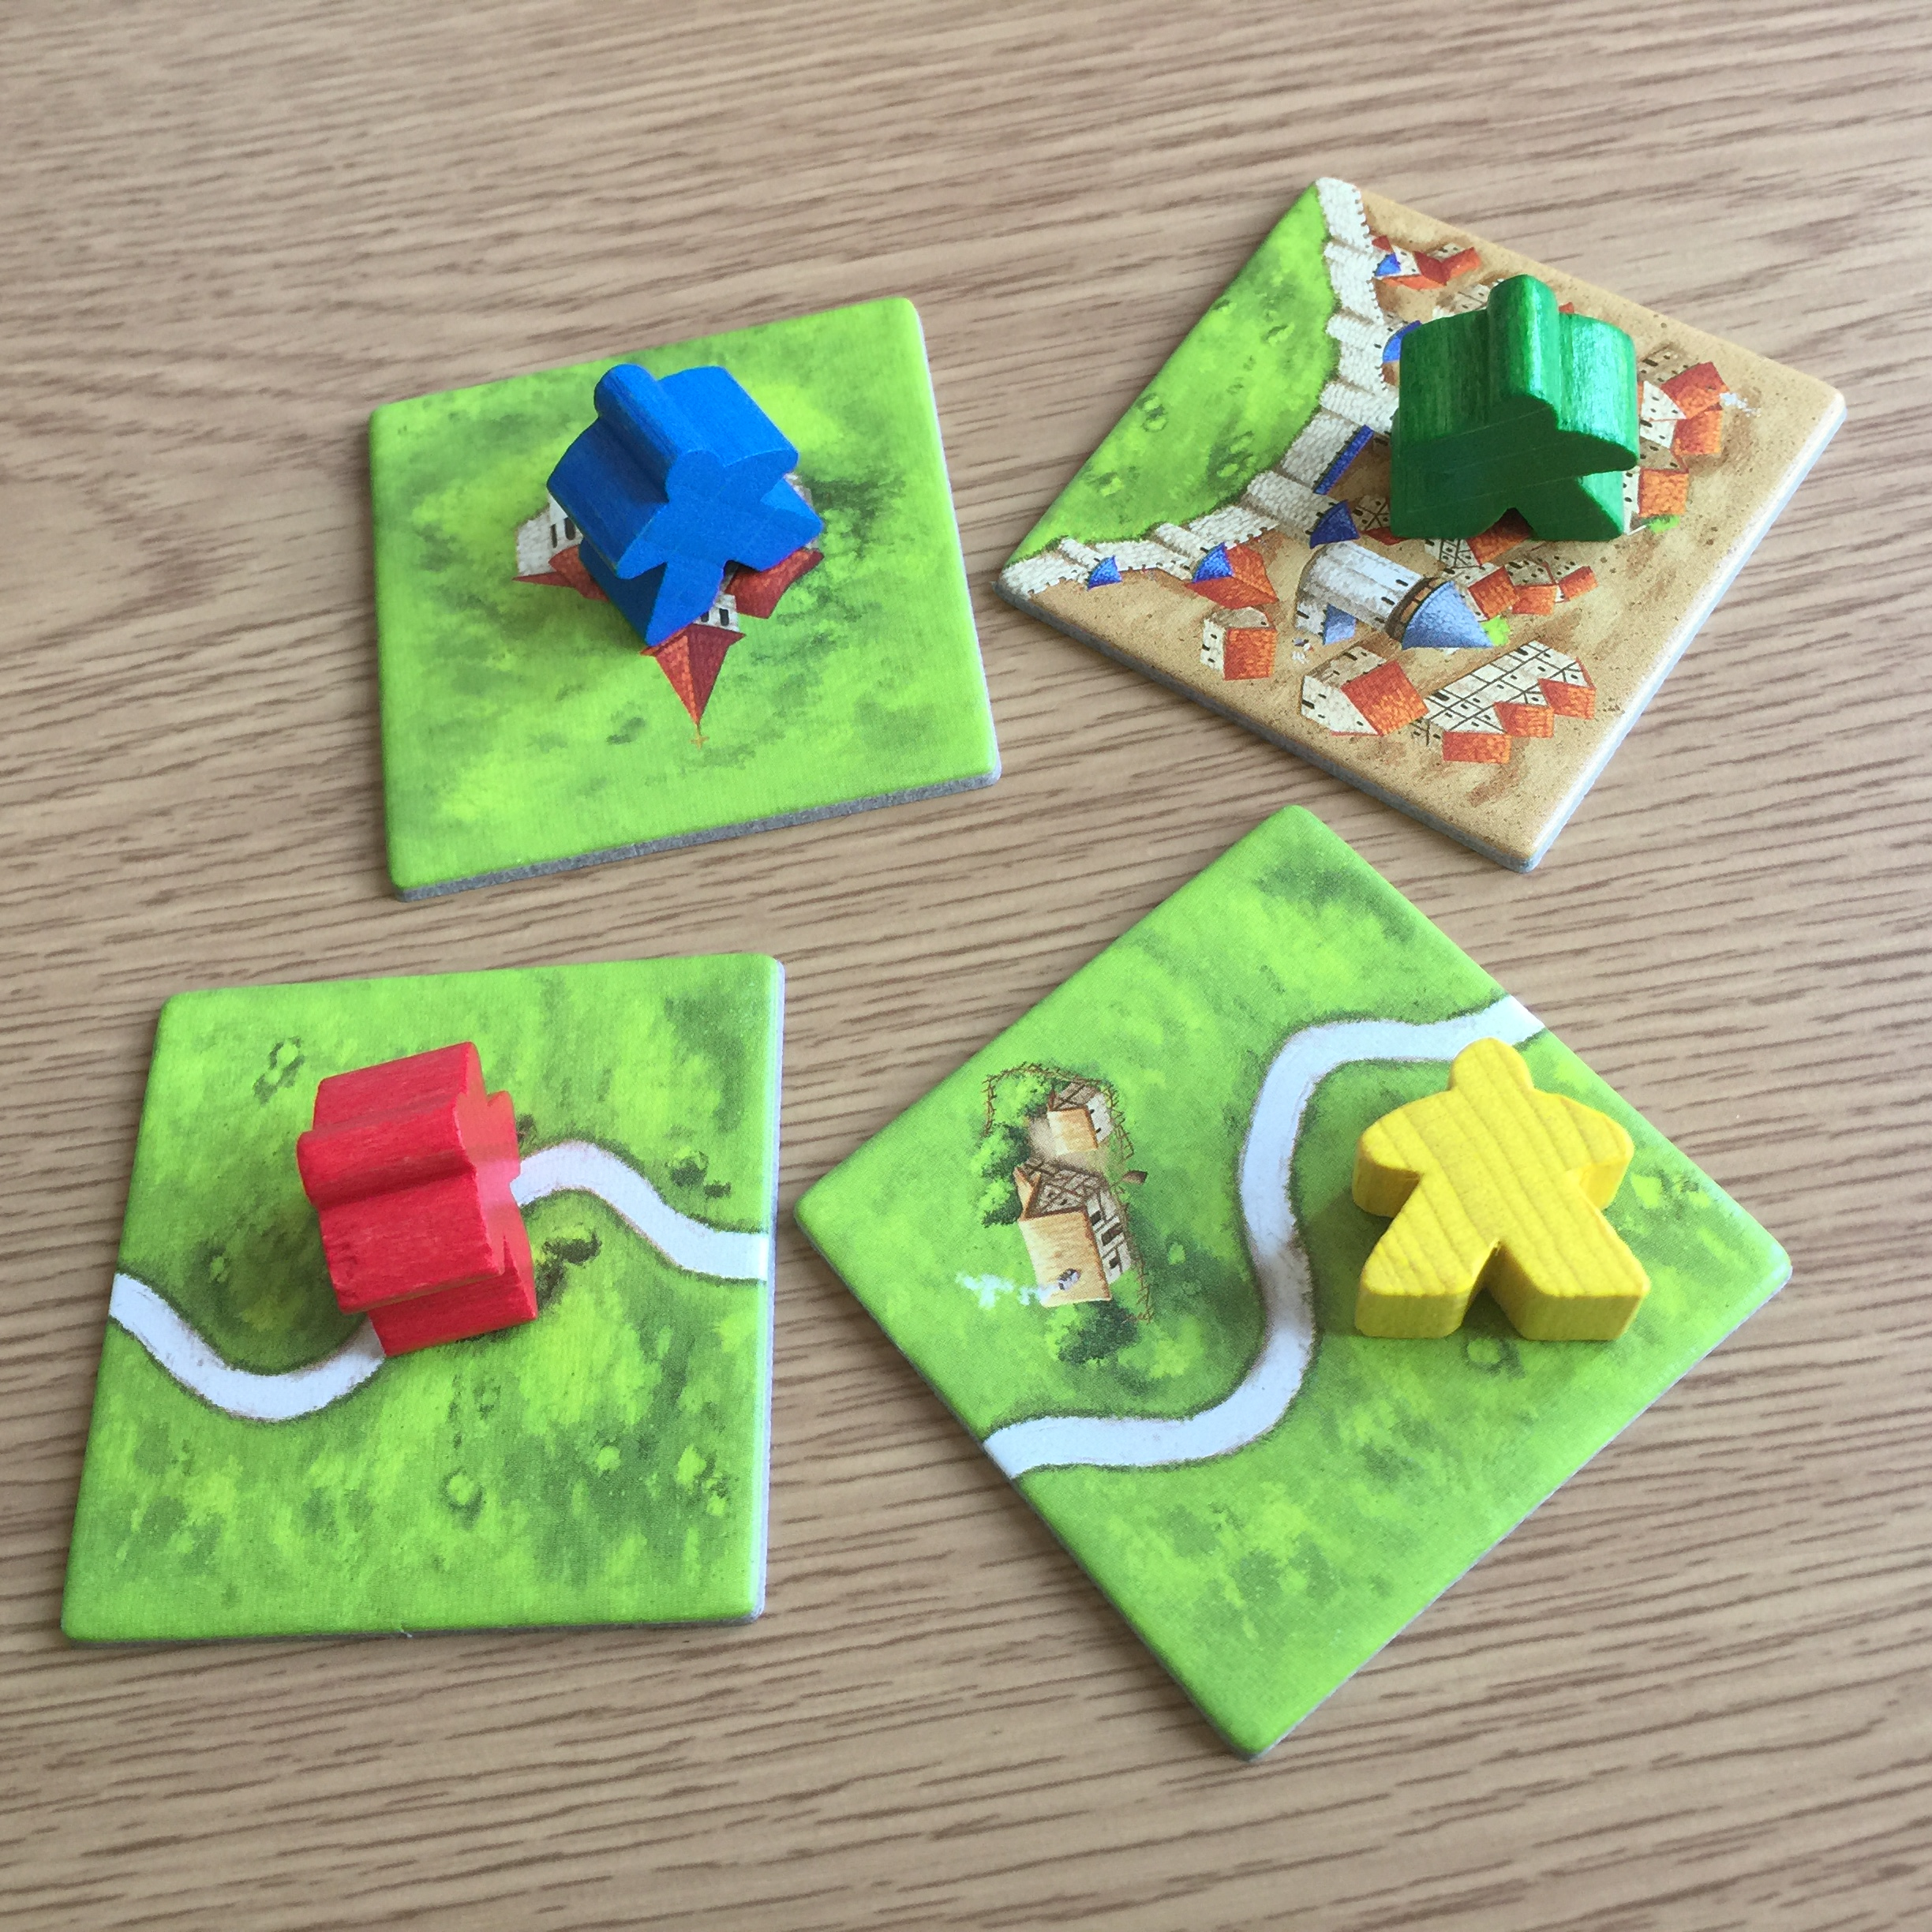 Carcassonne - Farmer (yellow), Highwayman (red), Knight (green), and Monk (blue)